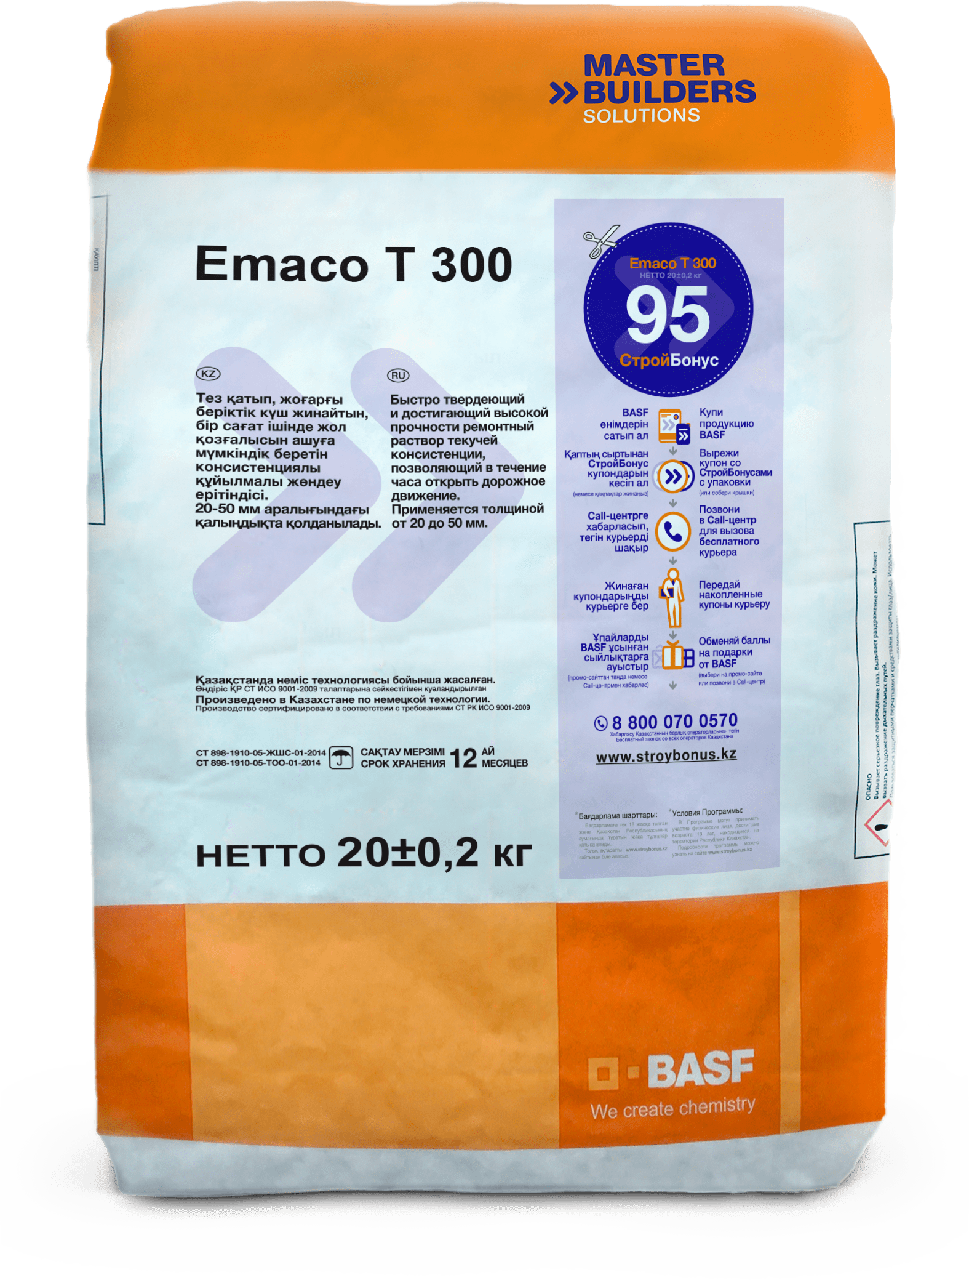 EMACO T 300